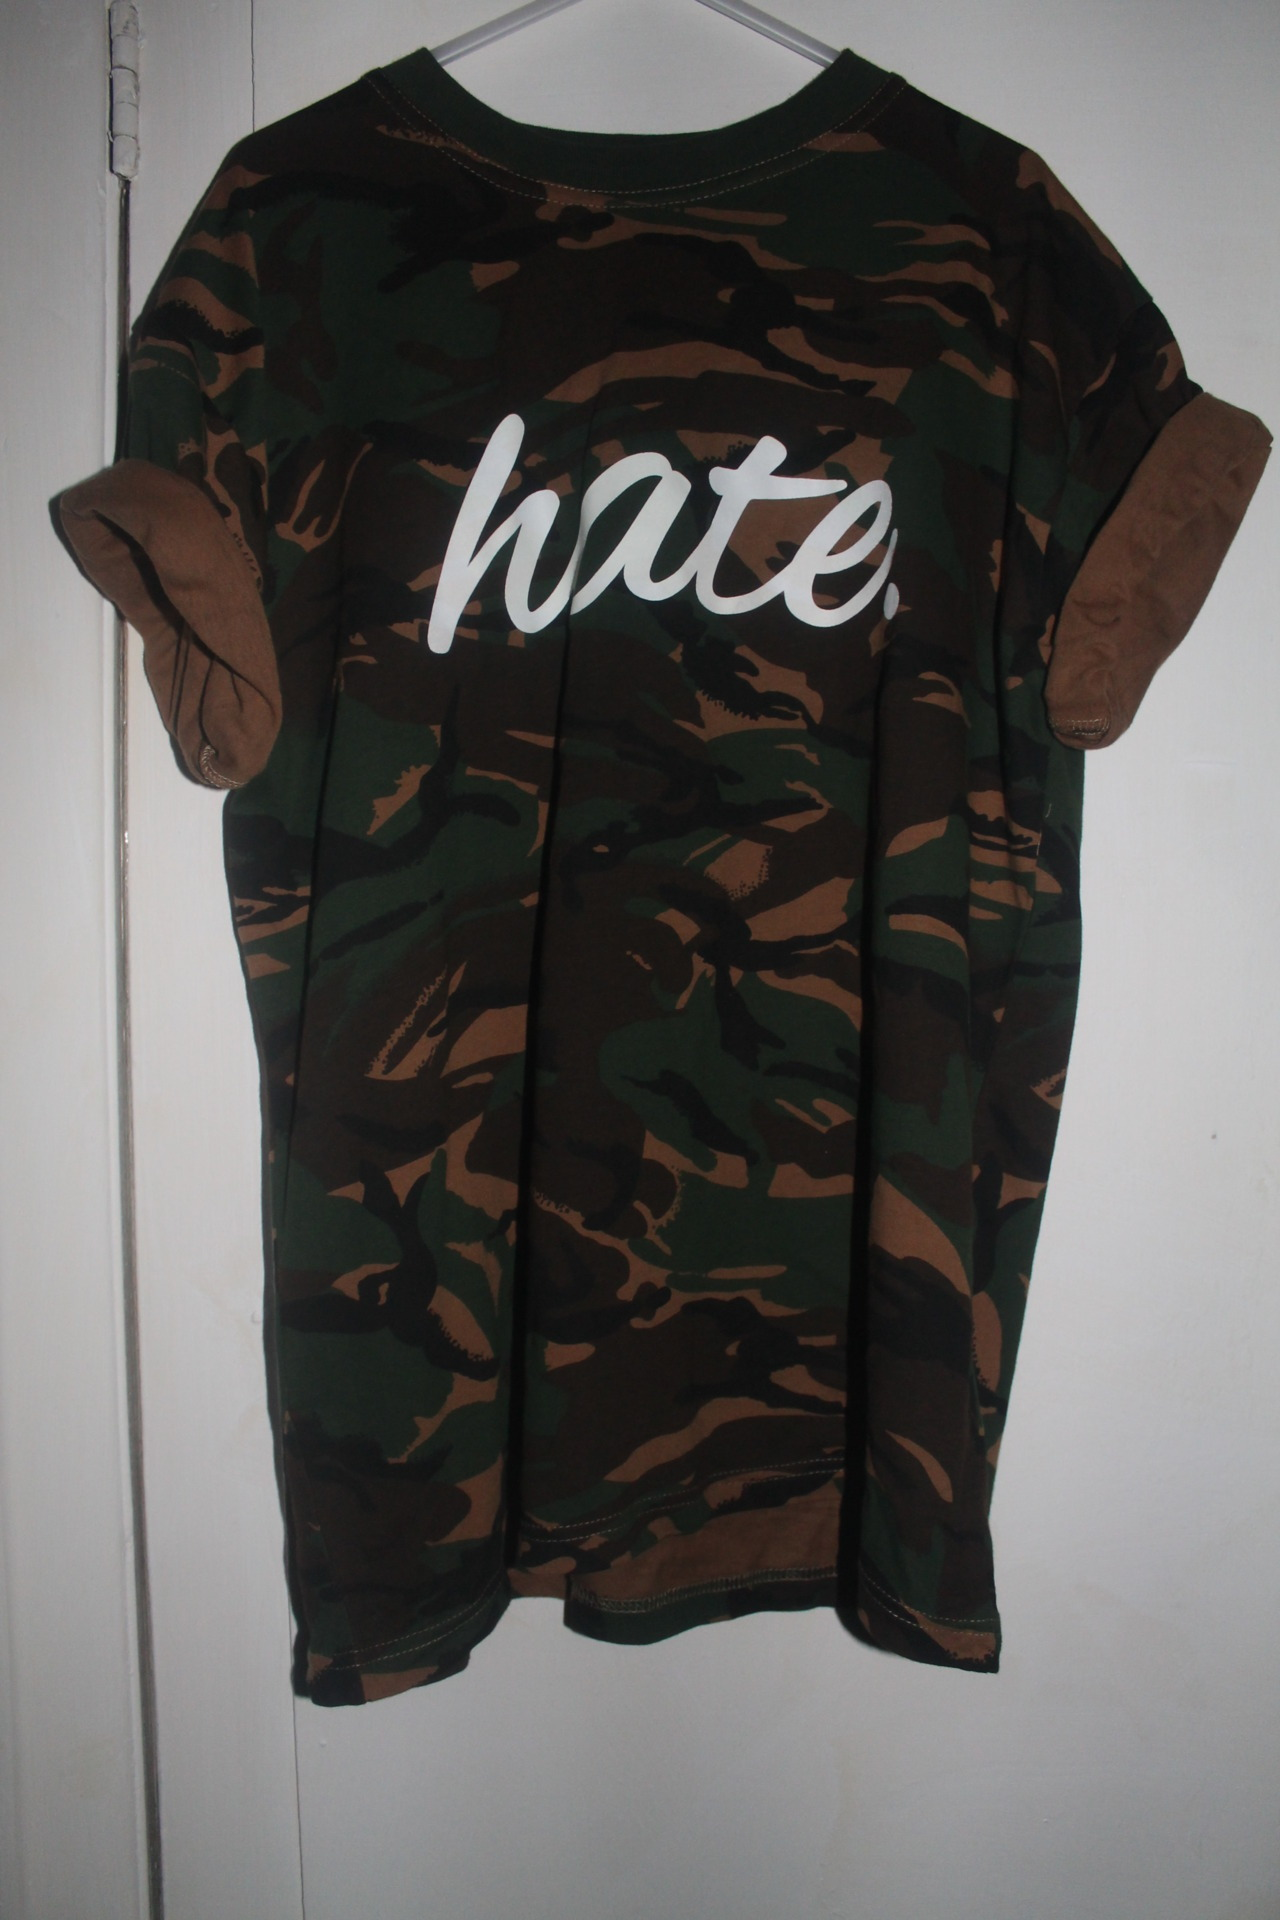 selling this, never been worn size large £10